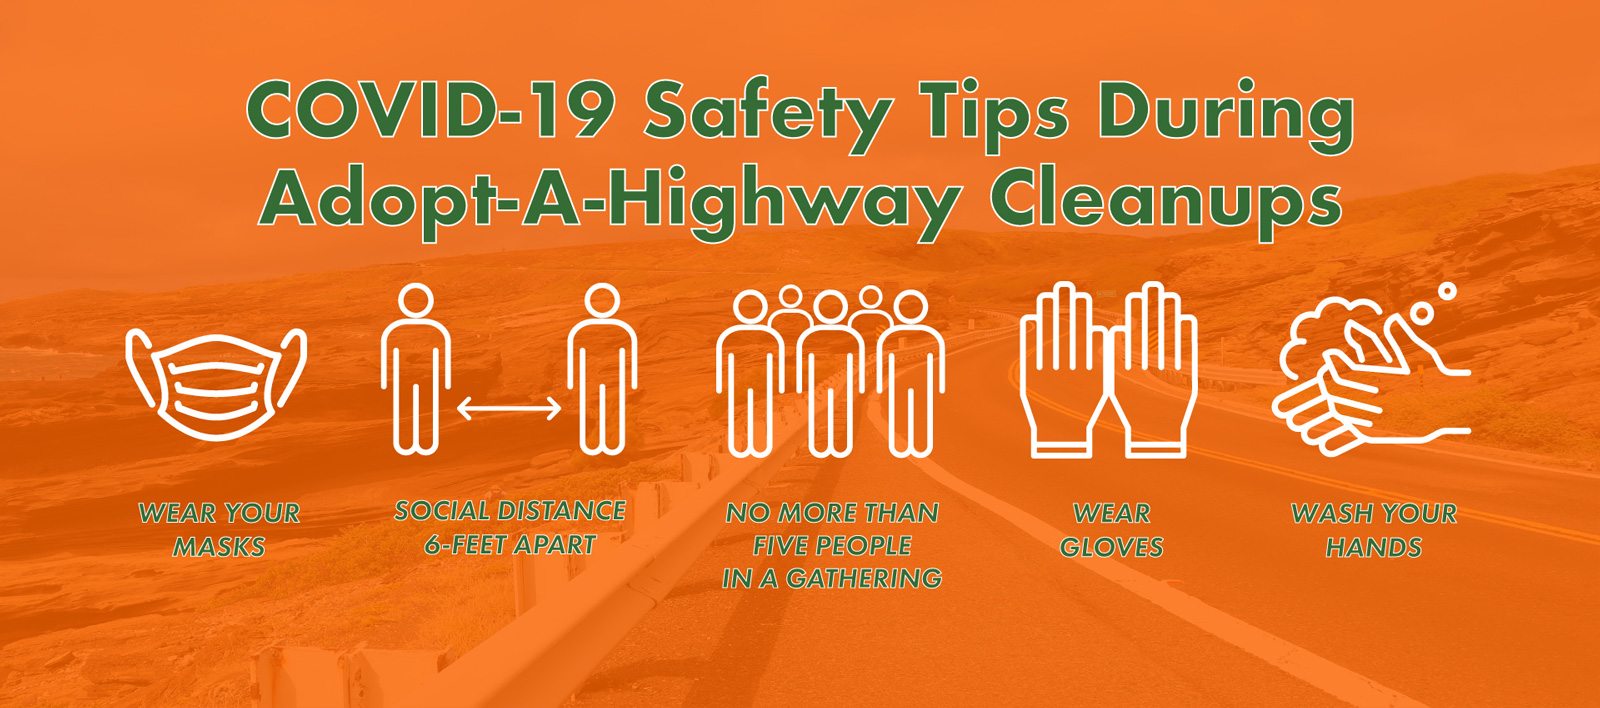 Adopt-A-Highway COVID Tips